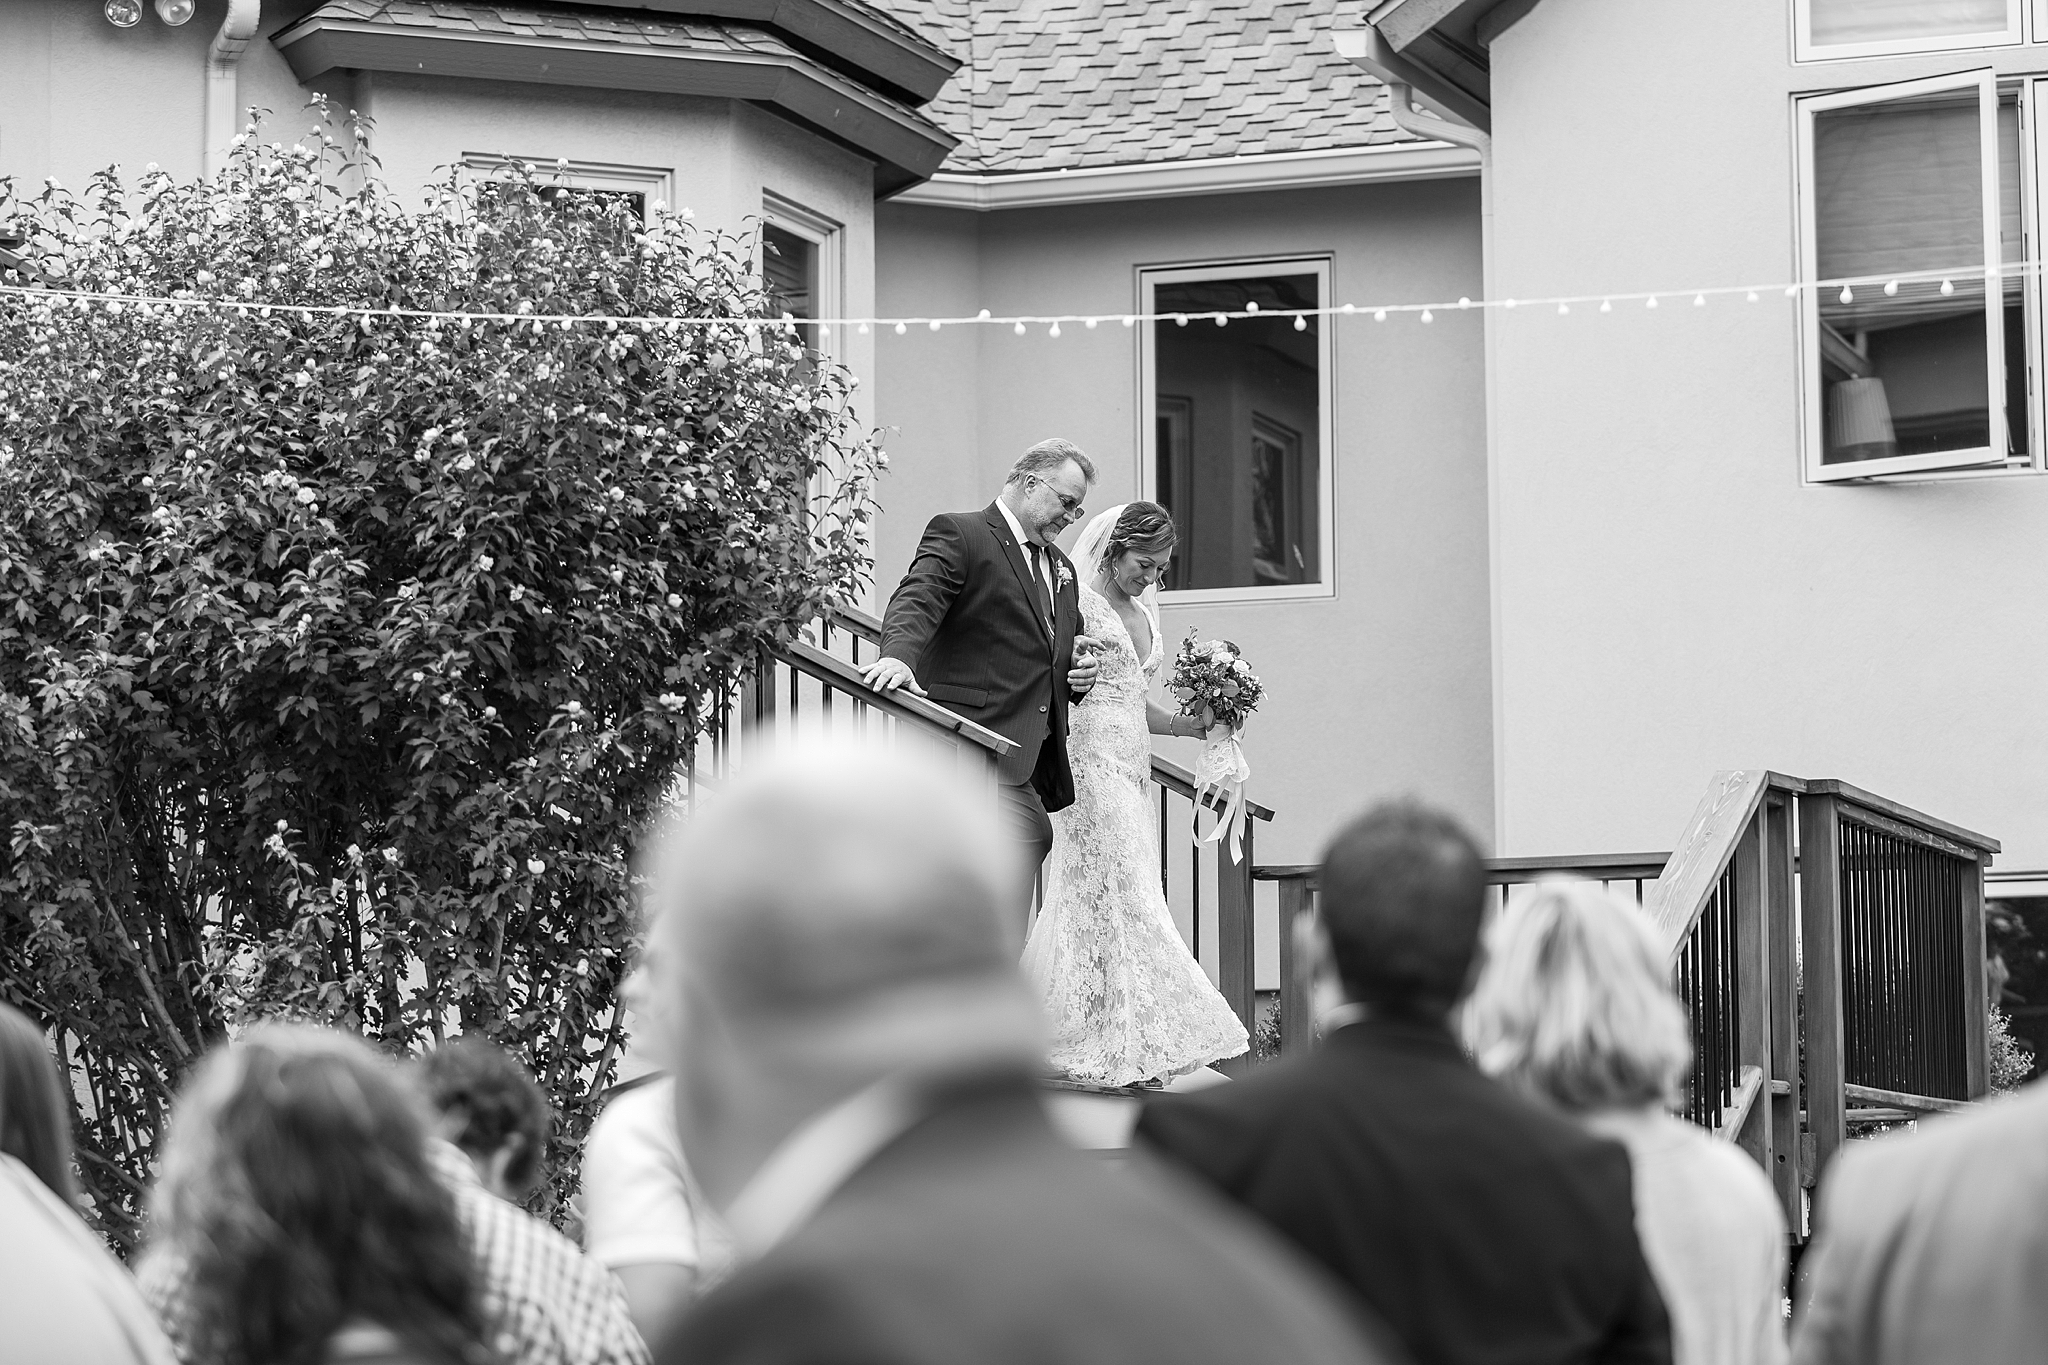 private-lakefront-estate-wedding-photography-in-ann-arbor-michigan-by-courtney-carolyn-photography_0023.jpg